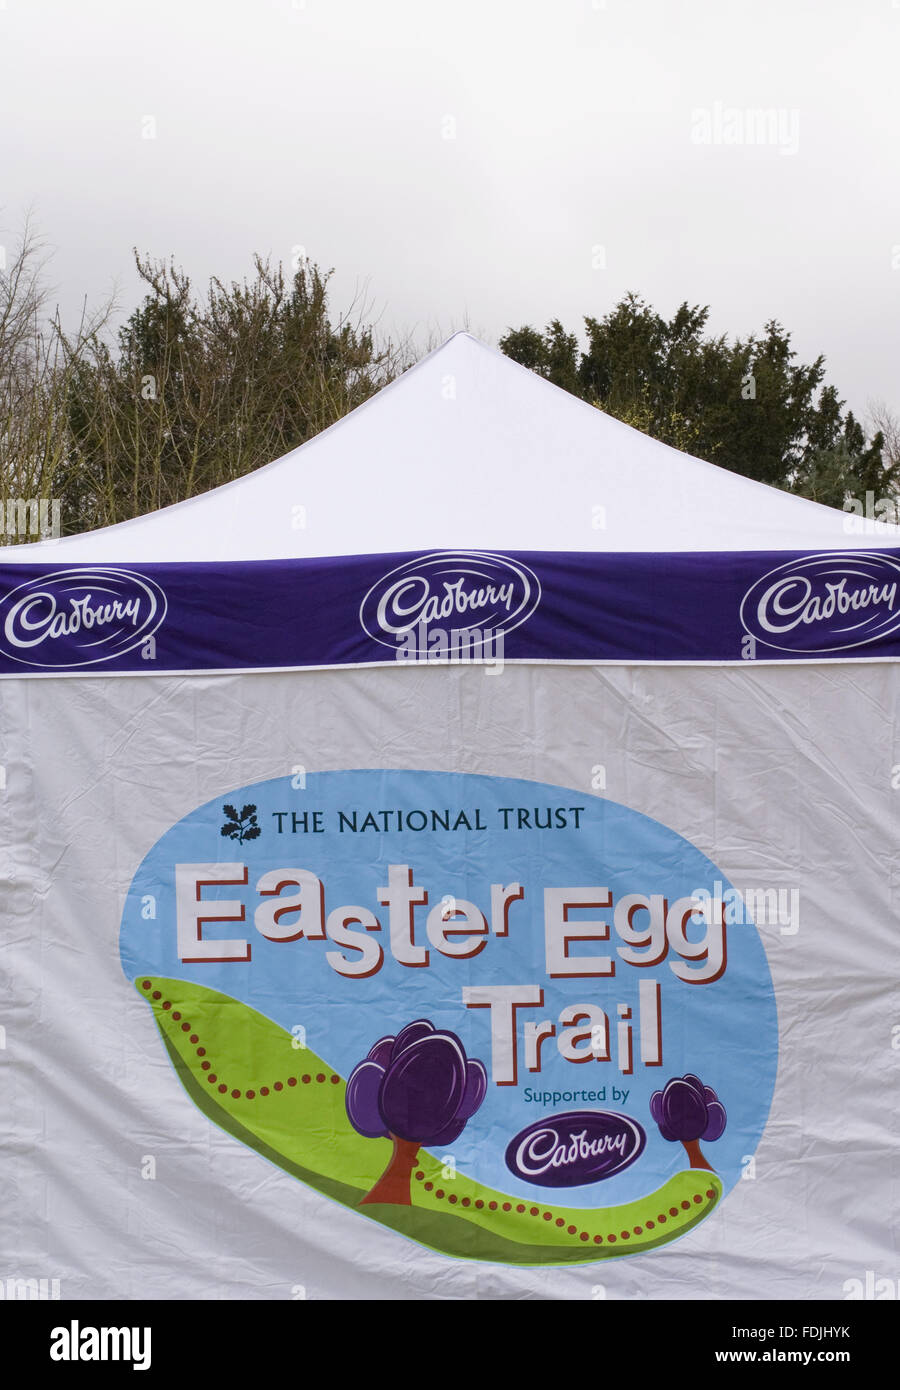 Branded marquee on an Easter Egg Trail, sponsored by Cadbury, at Stowe Landscape Gardens, Buckinghamshire. - Stock Image